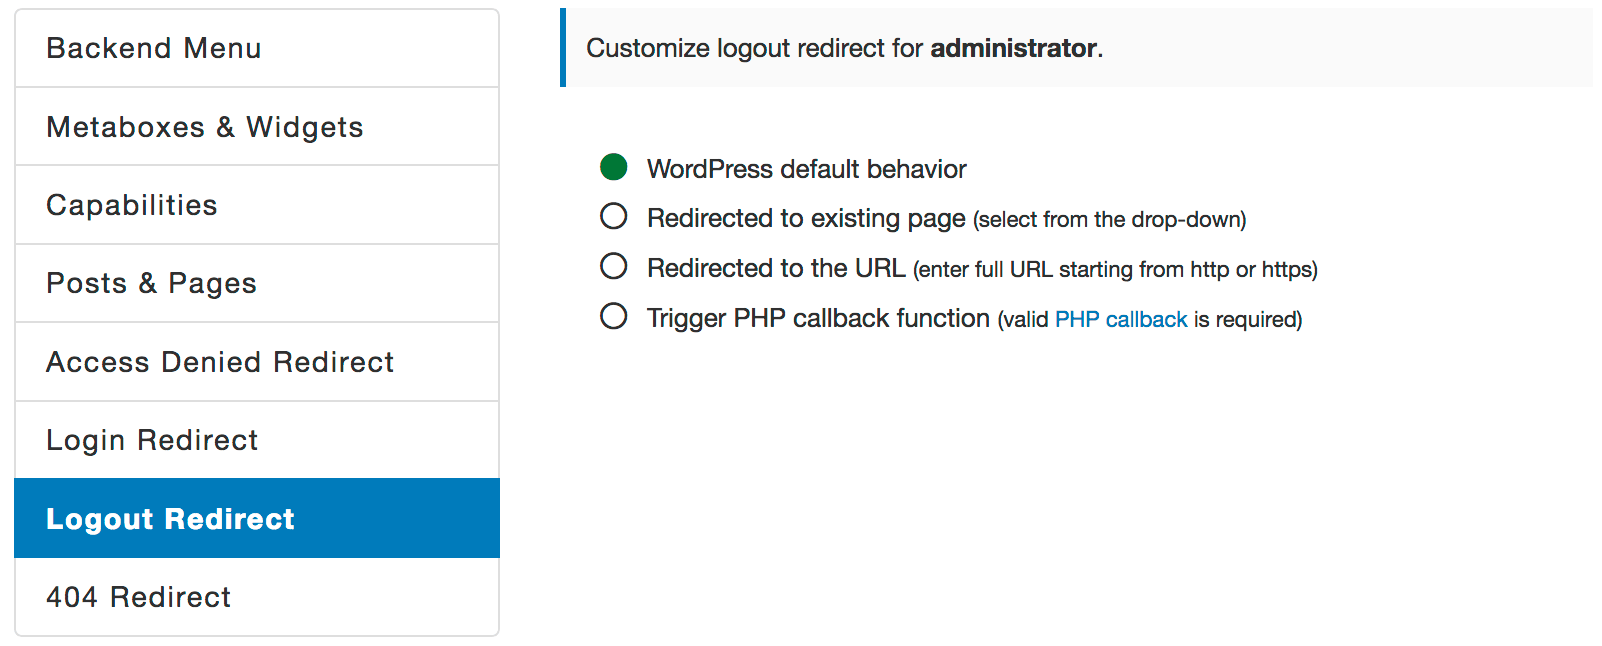 WordPress Logout Redirect